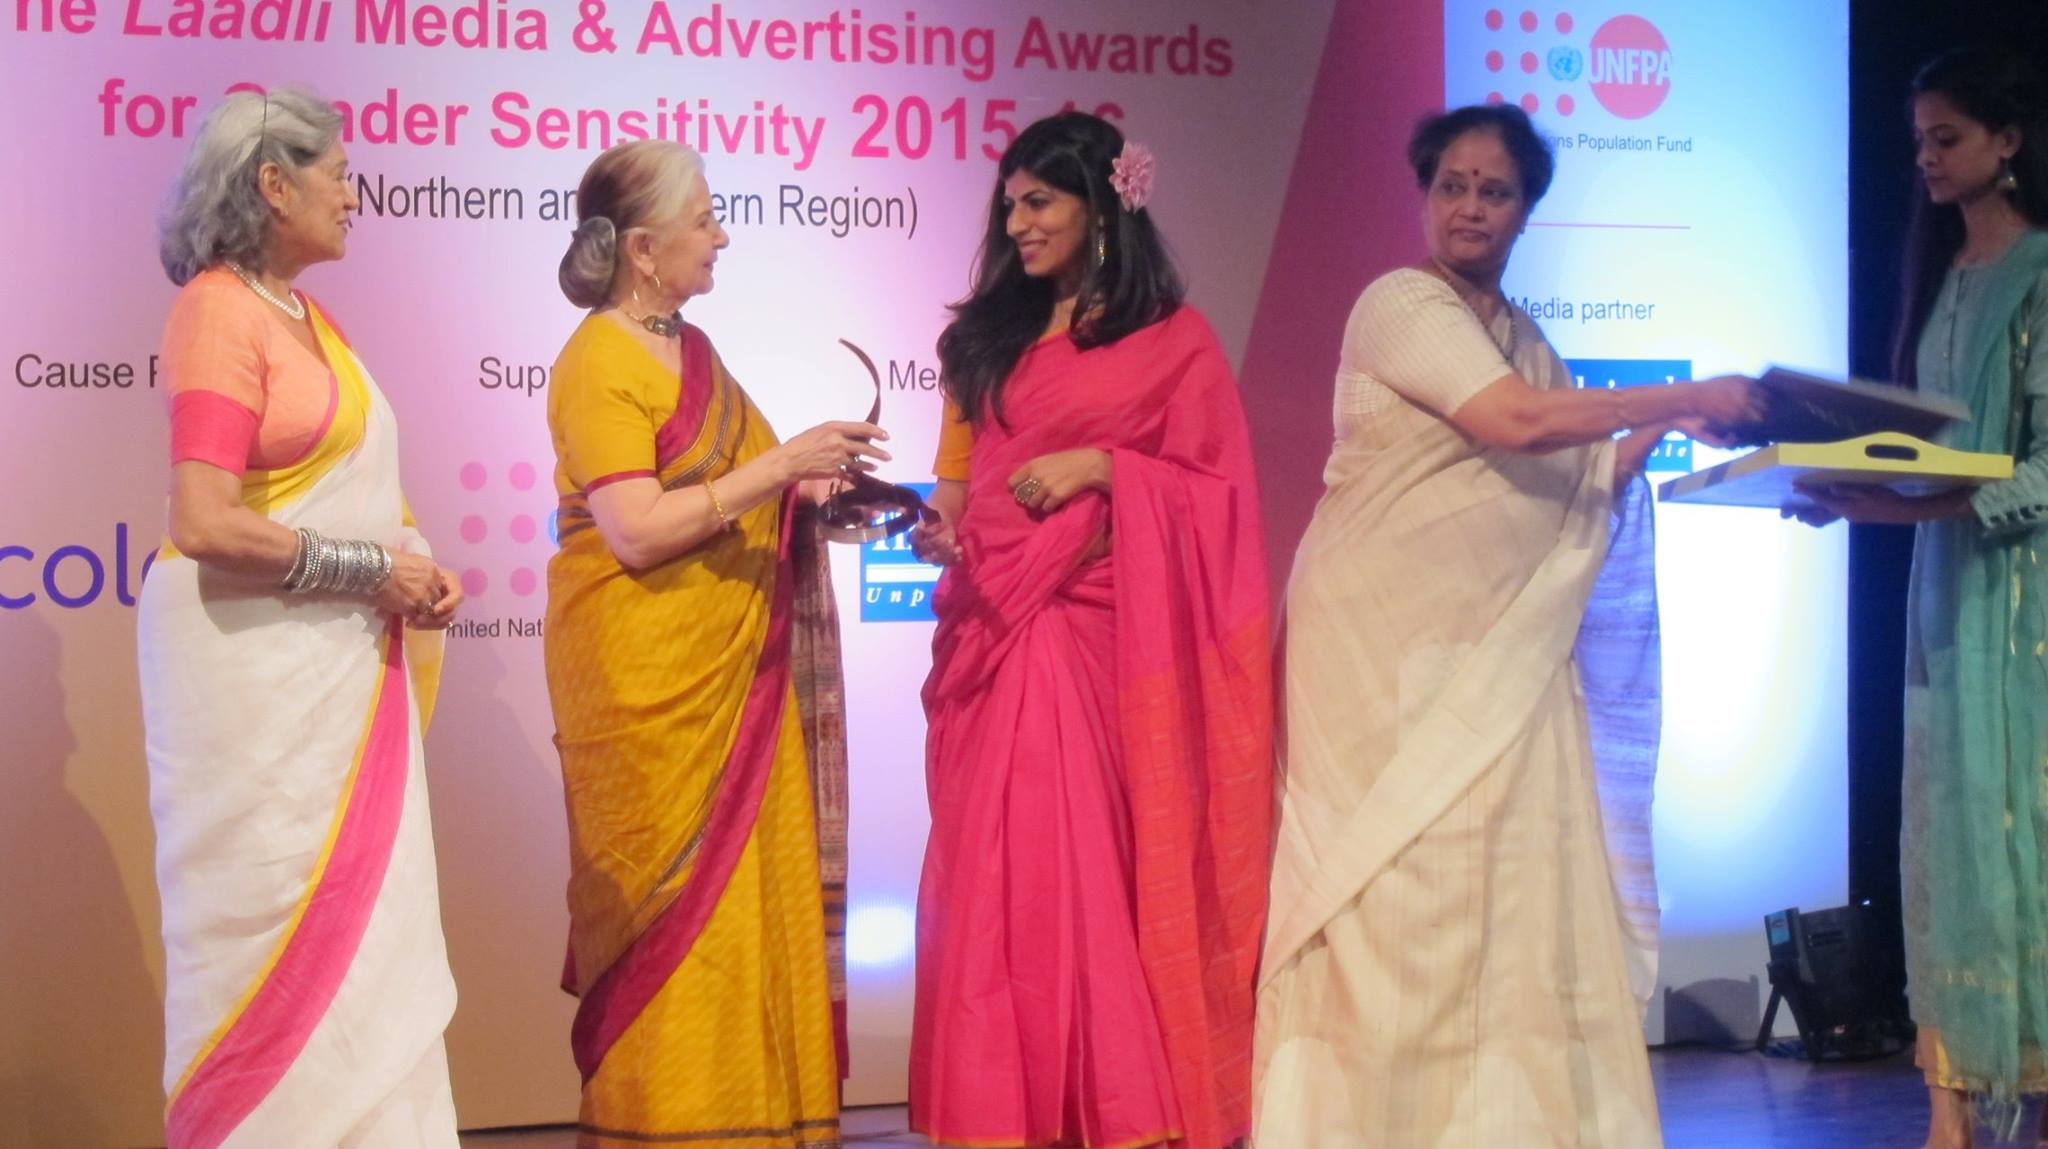 Shreya Ila Anasuya receiving the Laadli Award on Thursday. Credit: Ila Sanghani/Facebook